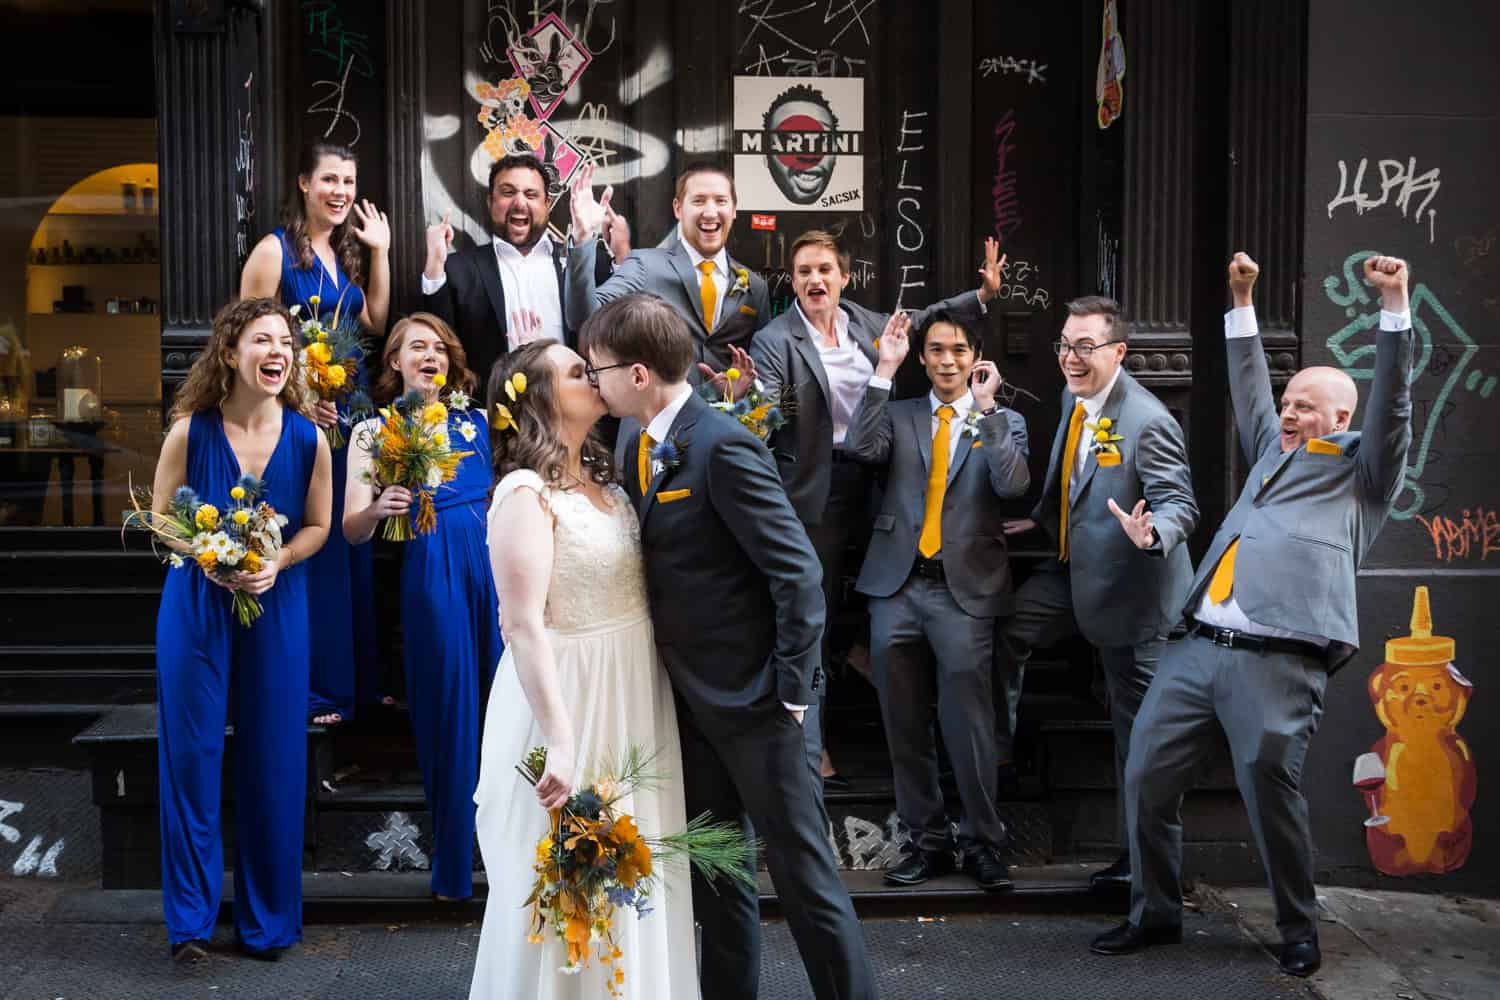 Bridal party cheering as bride and groom kiss for an article on Covid-19 wedding planning